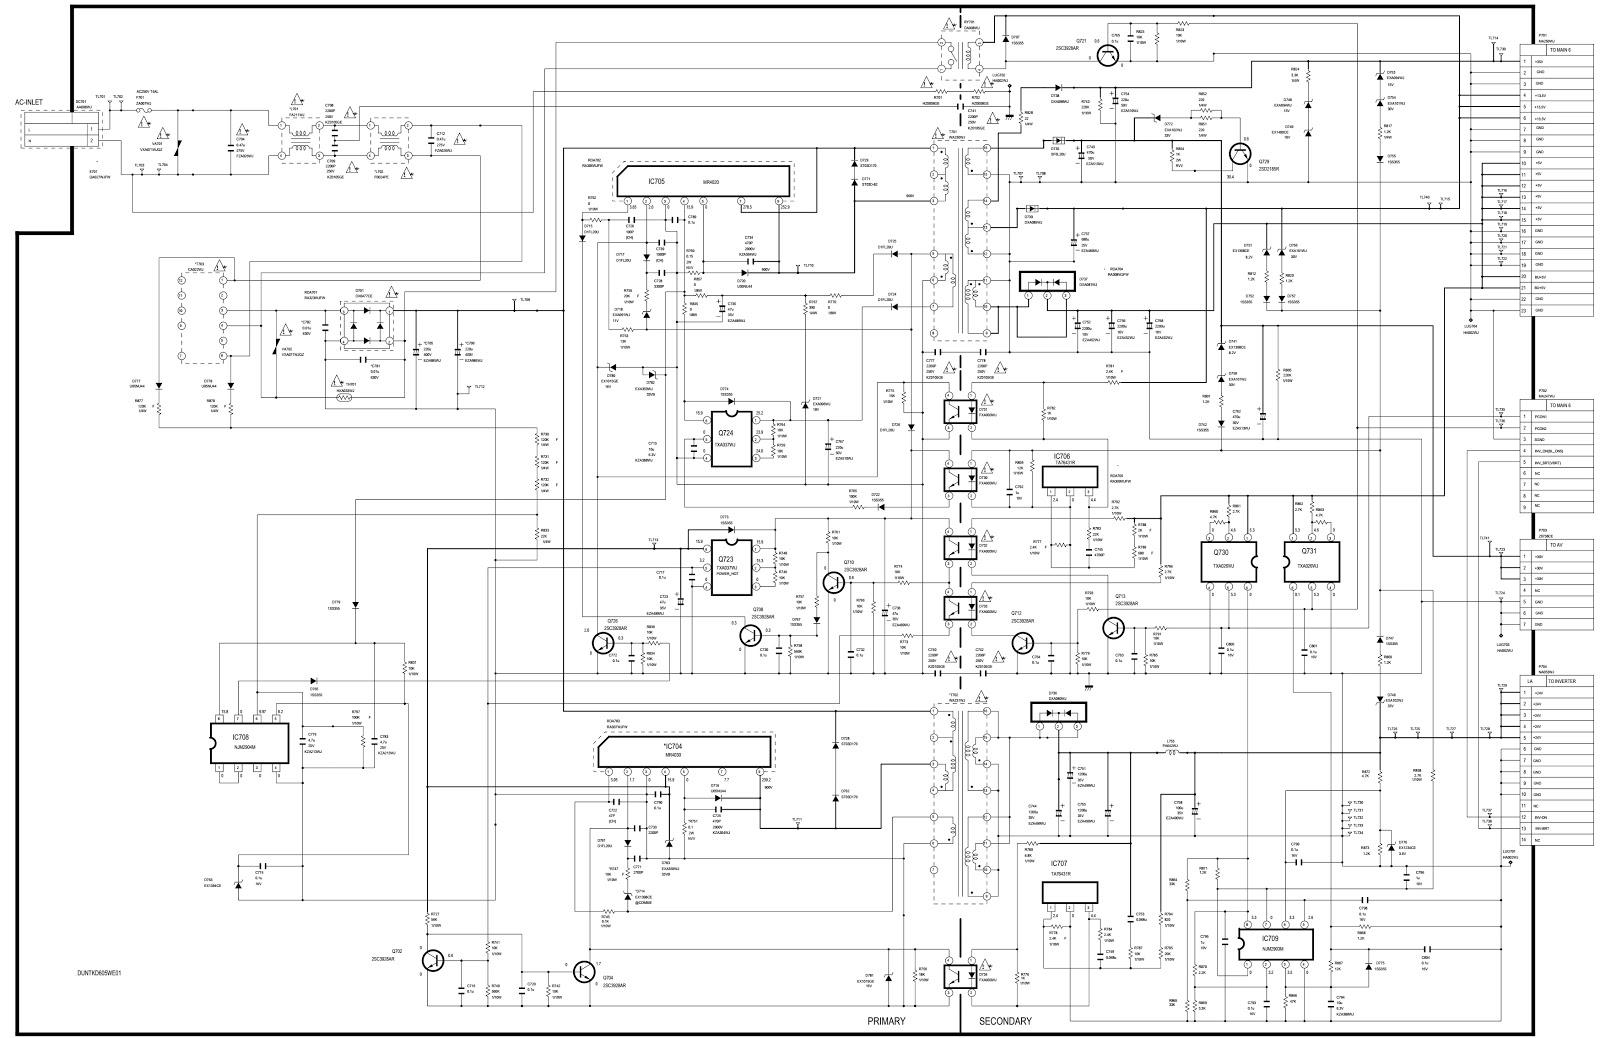 Schematic Diagrams  Sharp Lc26  Lc32 And Sharp Lc37  U2013 Lcd Tvs  U2013 Smps And Back Light Inverter